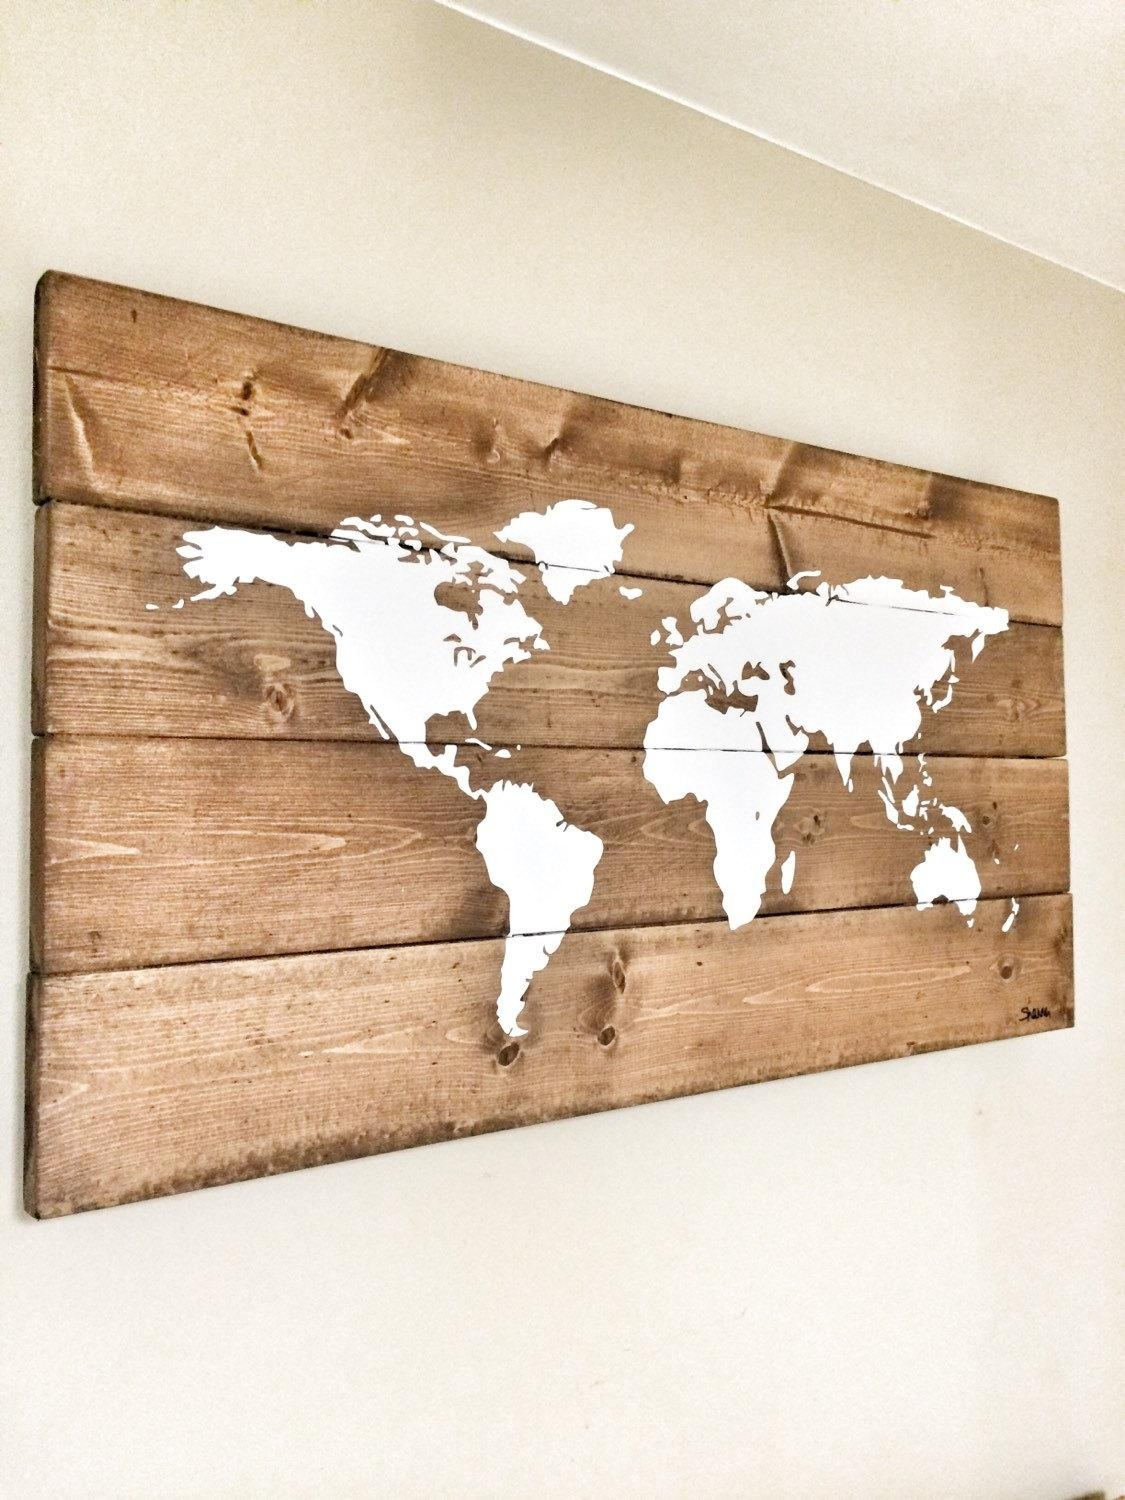 Wall Art Designs: Amazing Wooden World Map Wall Art, Large Wood Inside World Map Wood Wall Art (Image 11 of 20)